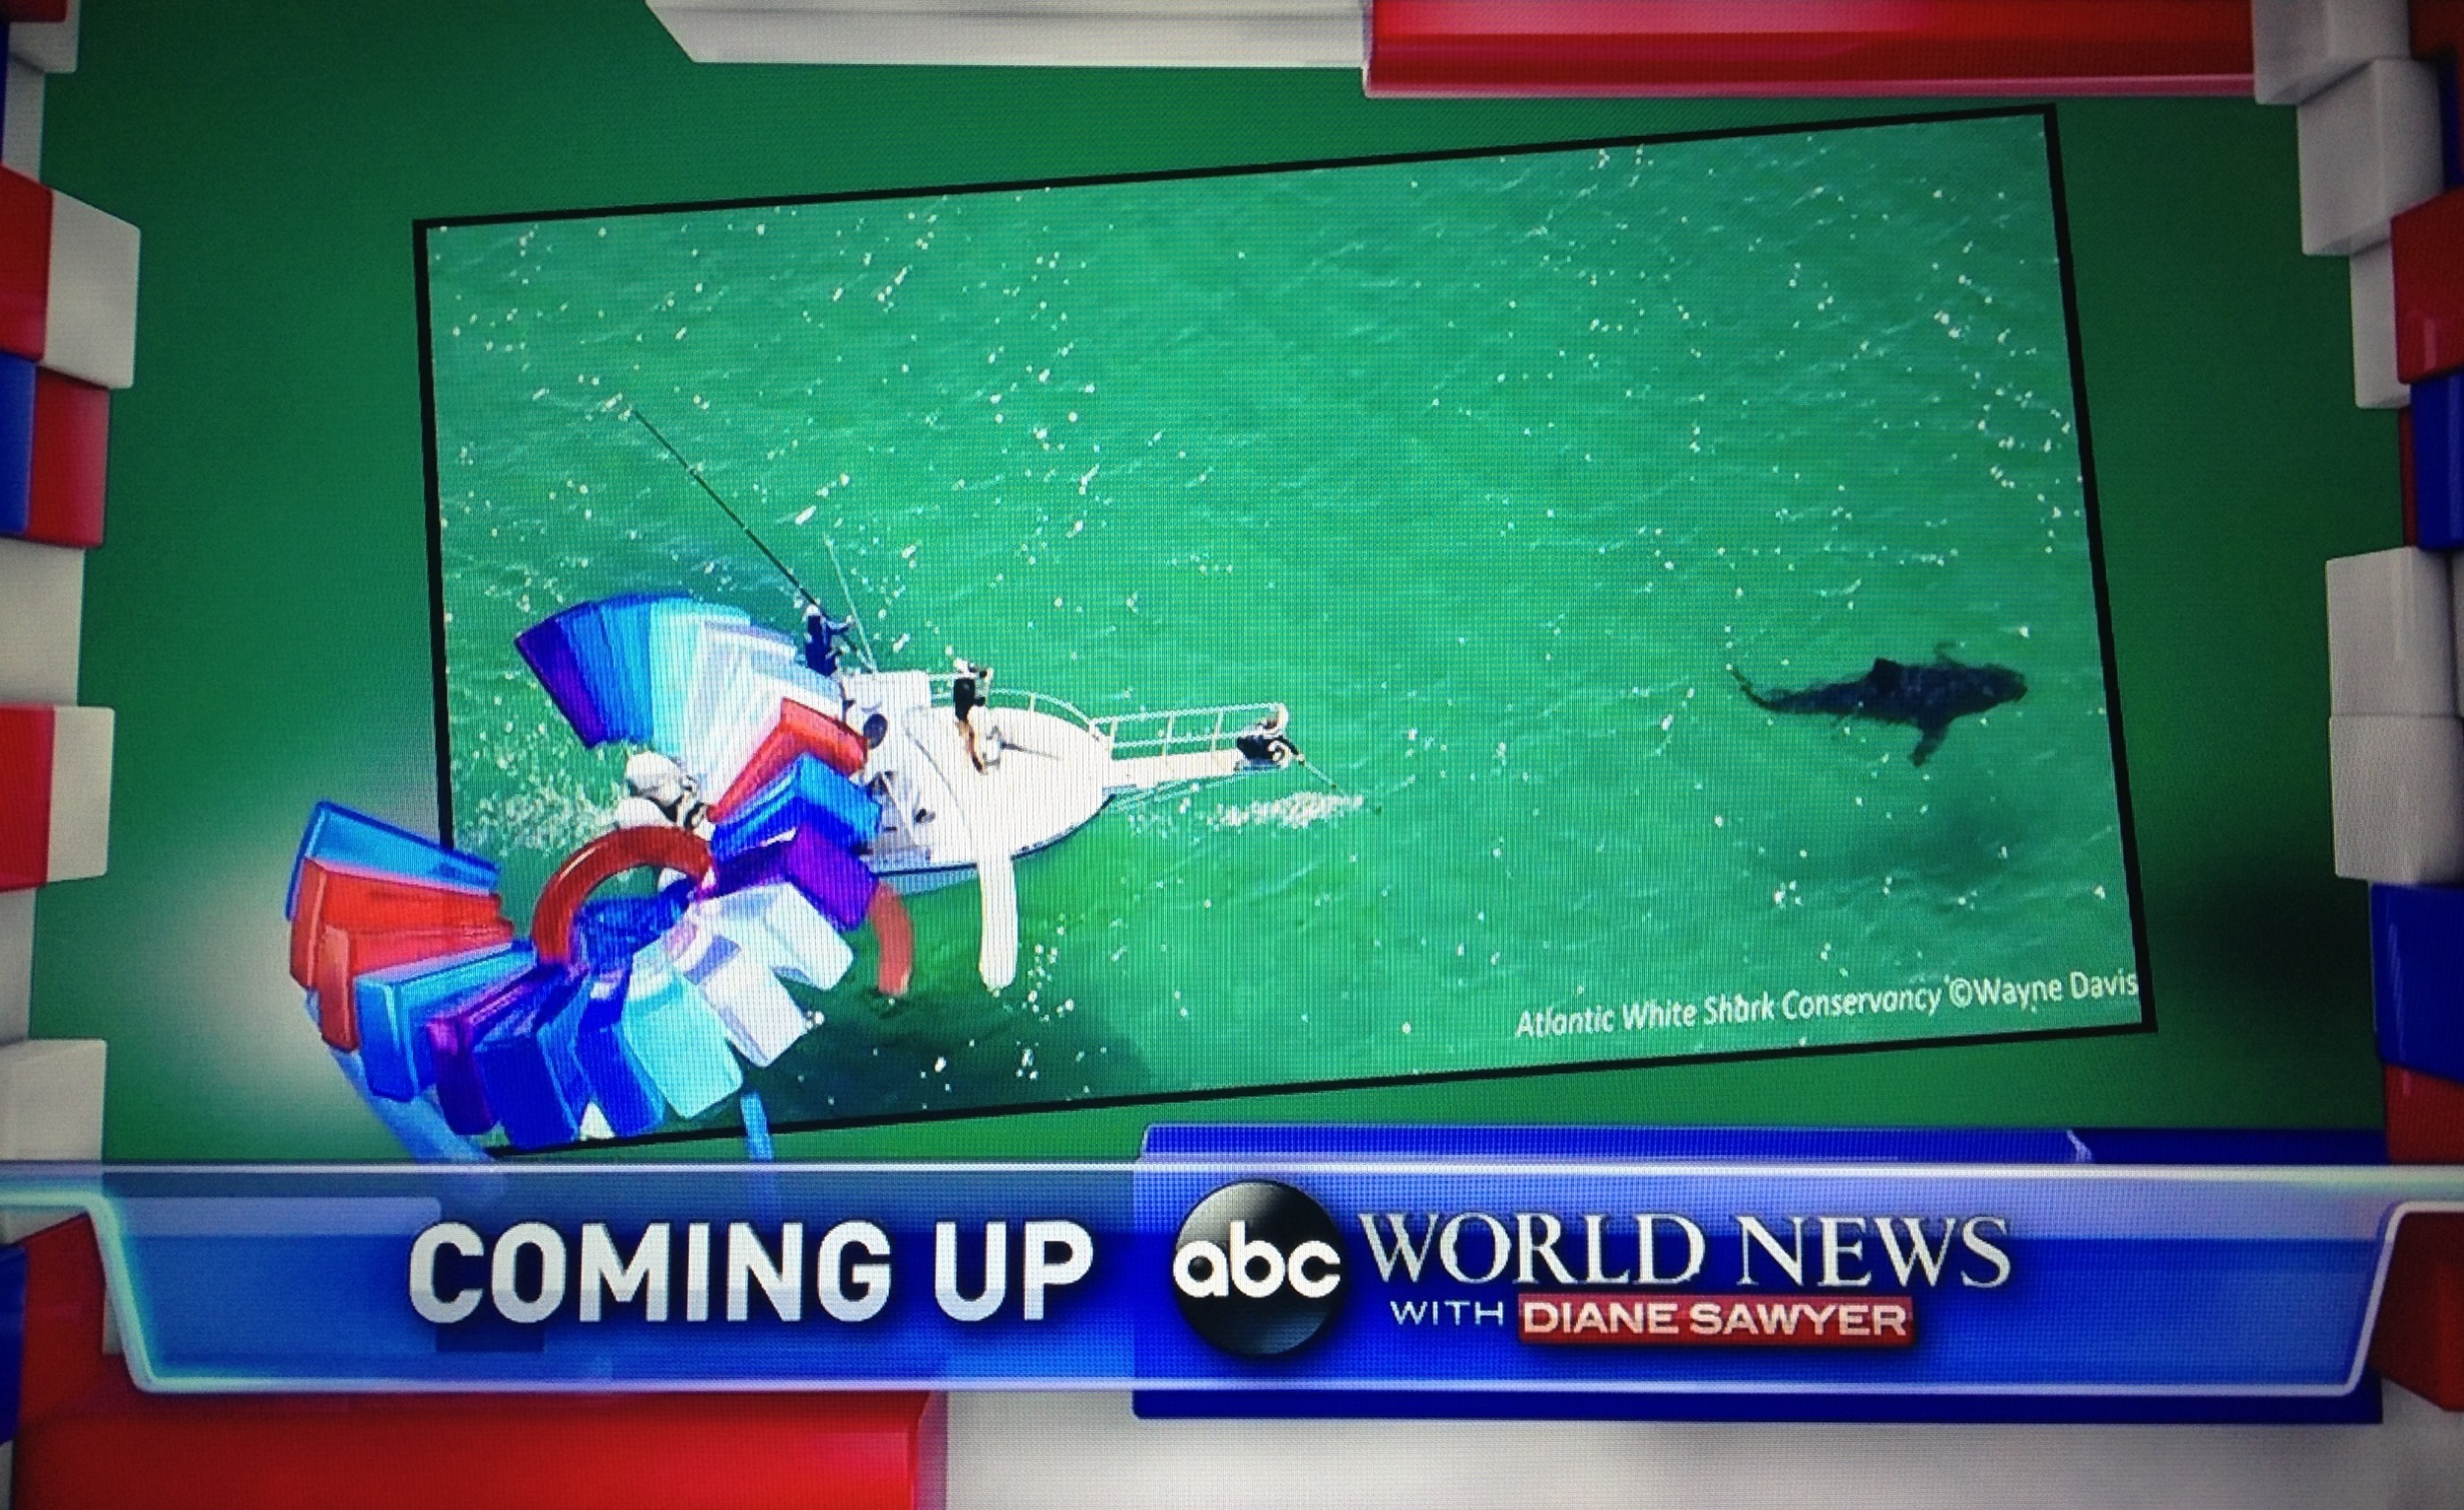 Atlantic White Shark Conservancy on ABC World News with Diane Sawyer.